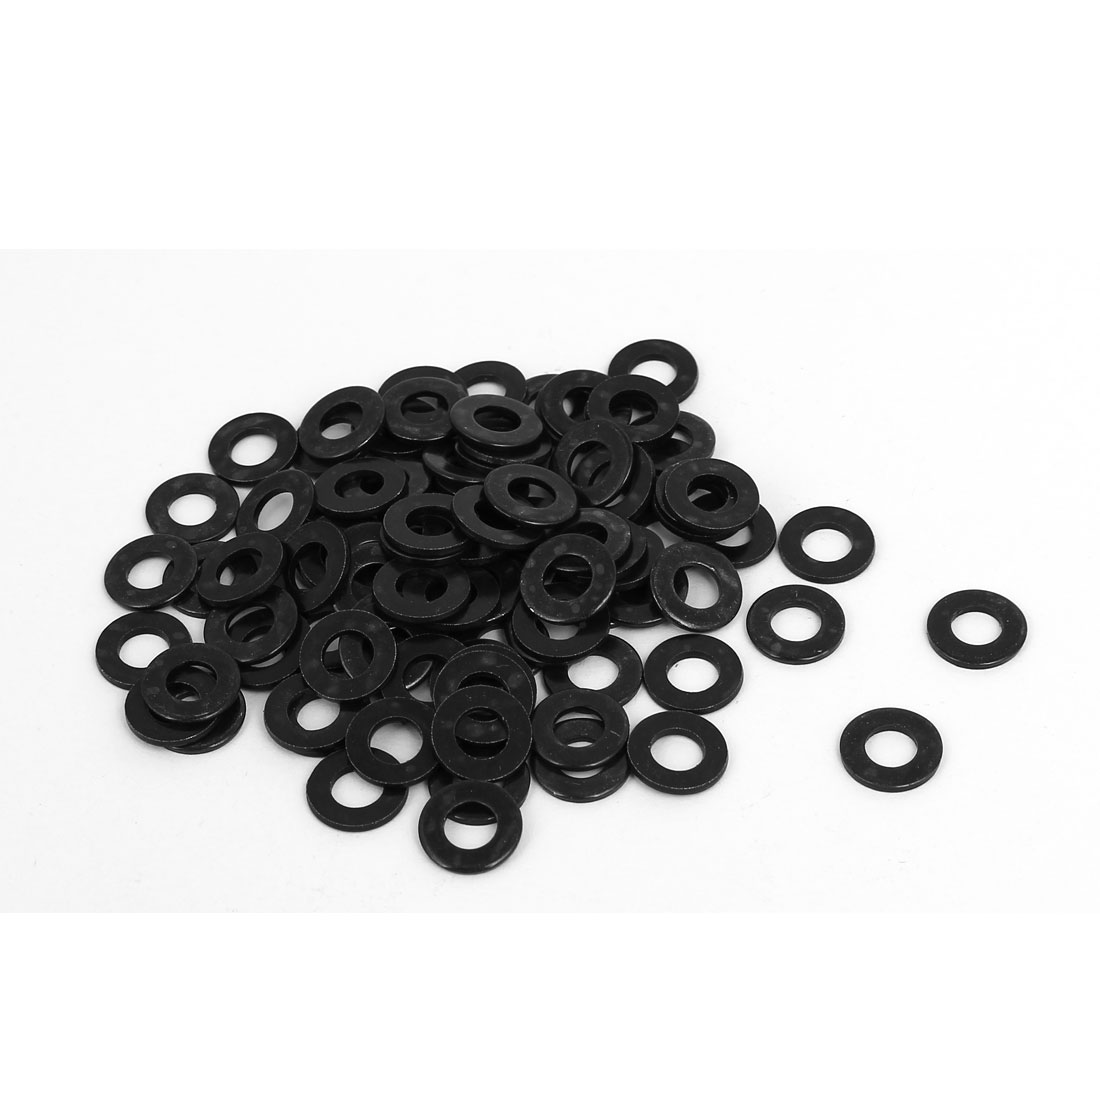 M5 x 10mm x 1mm Black Zinc Plated Flat Washers Gaskets Spacers 100PCS